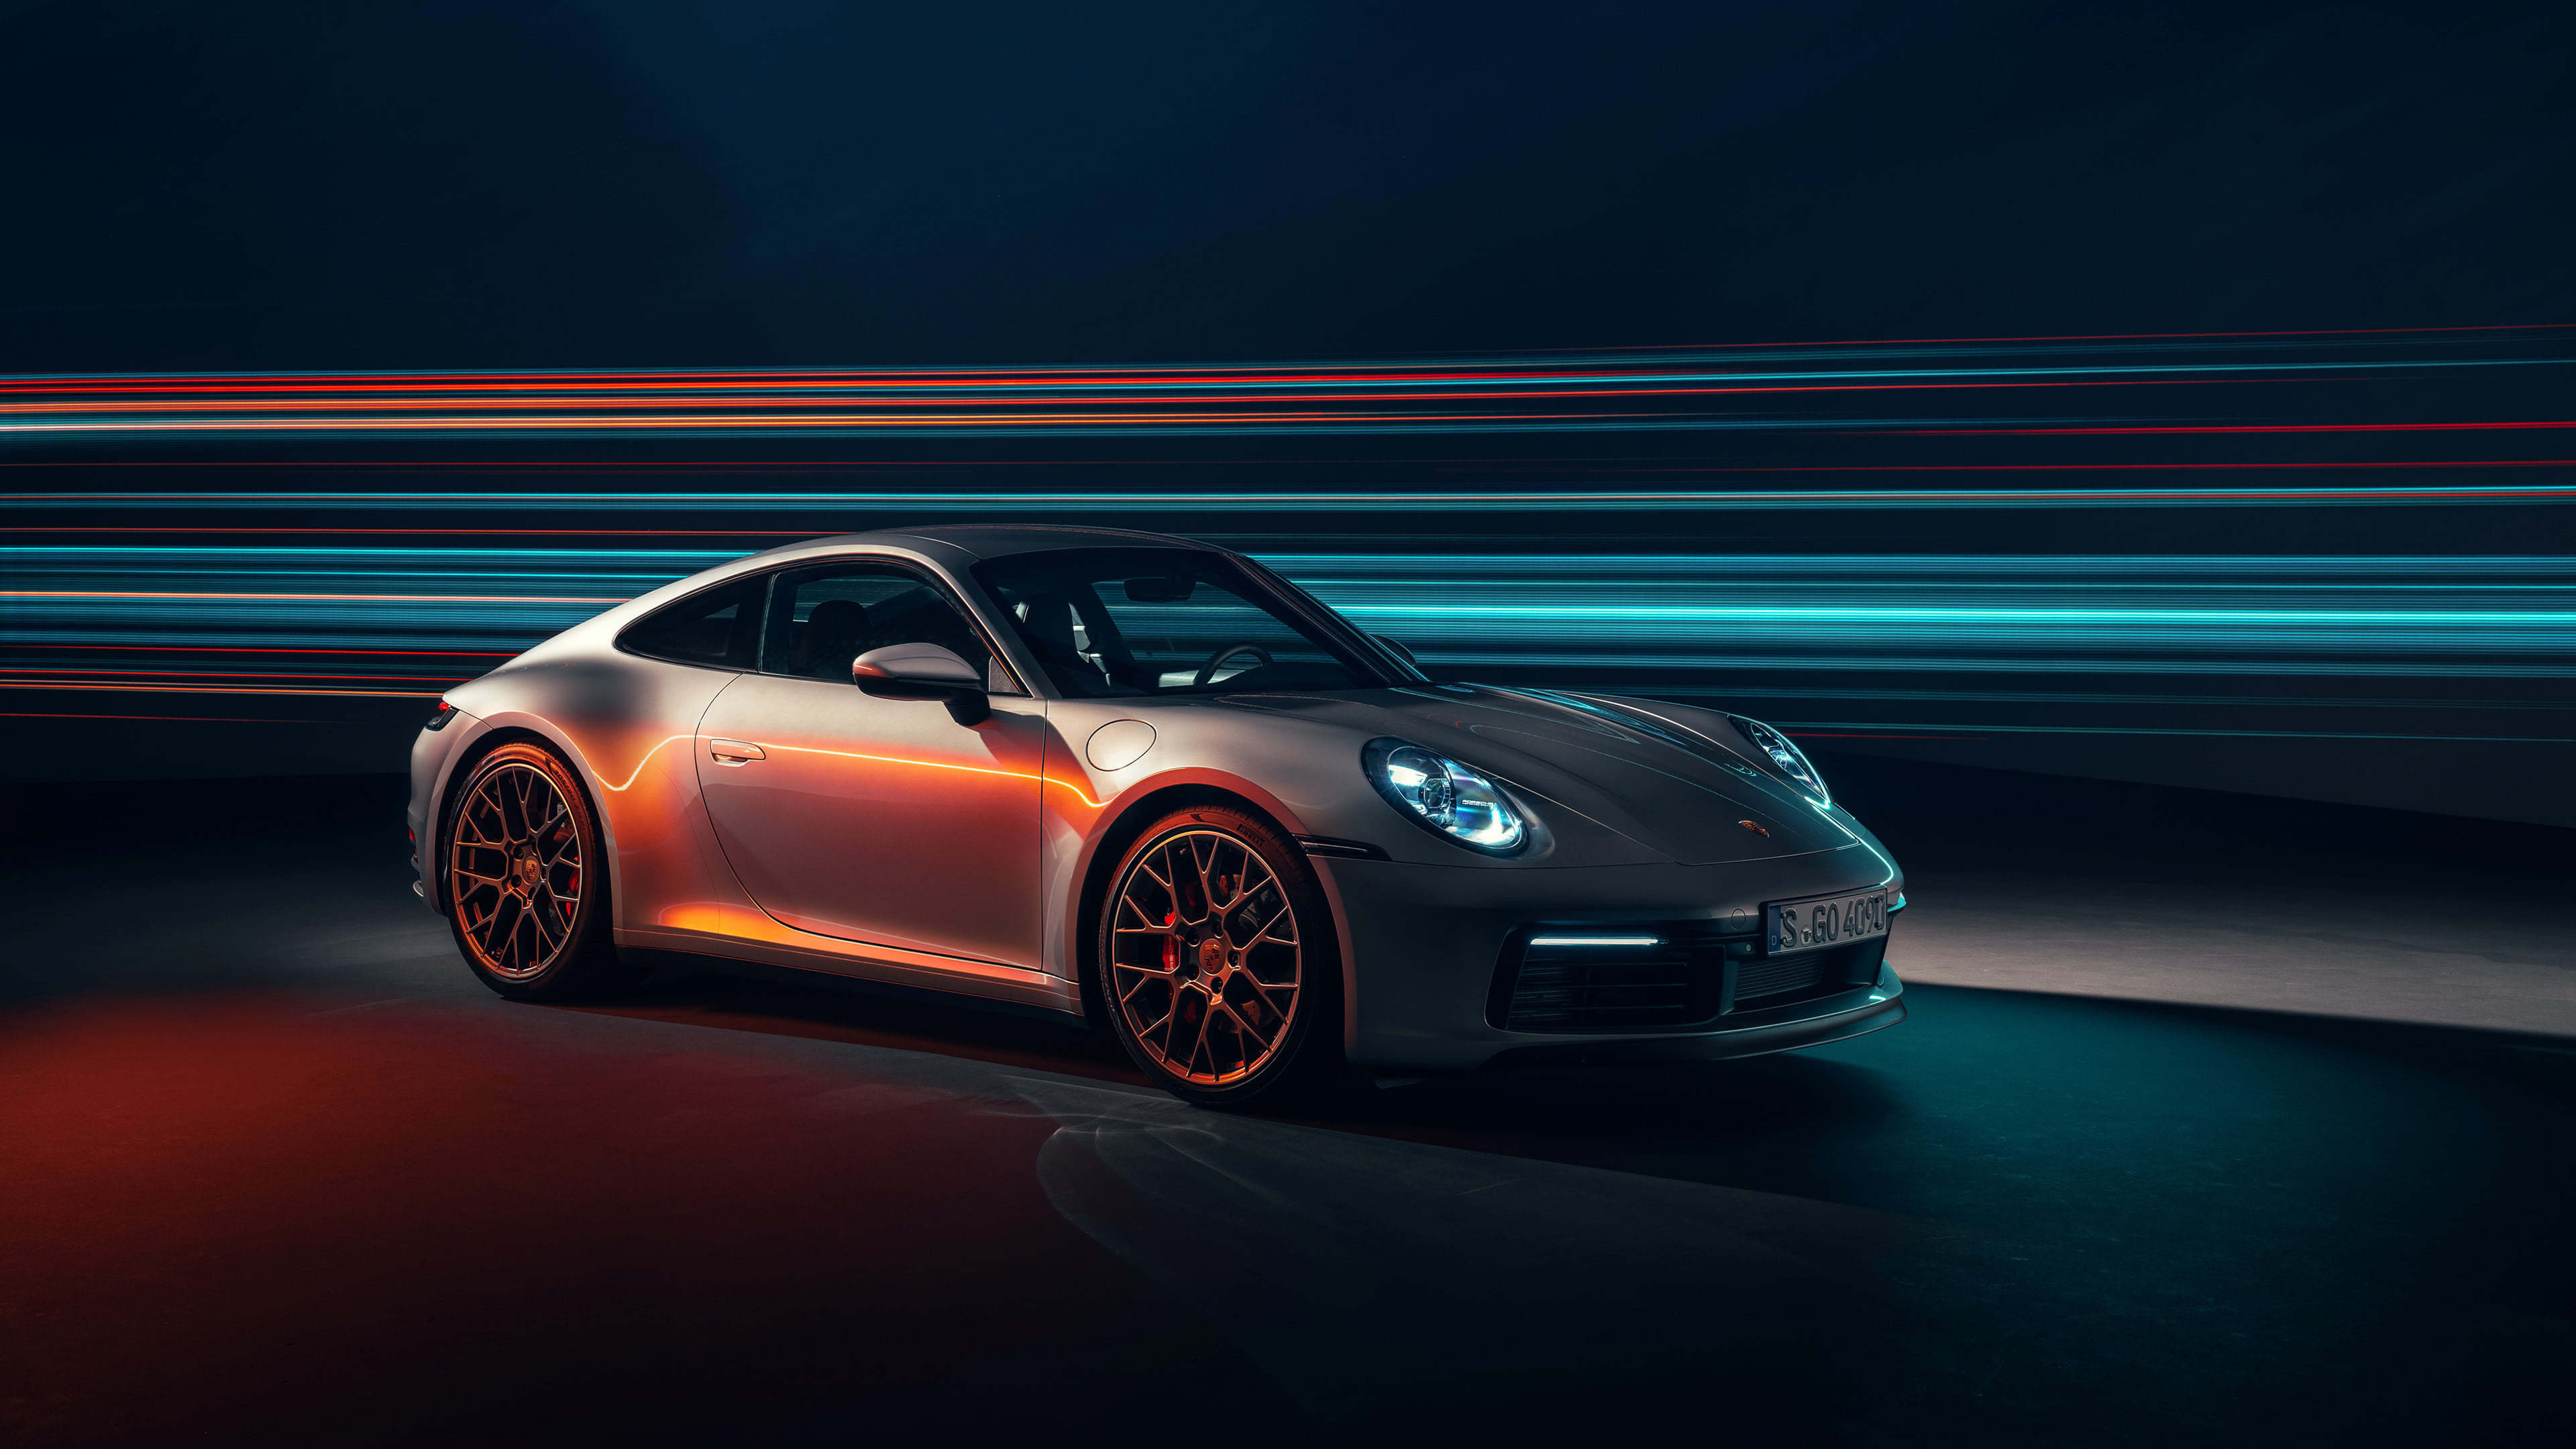 Porsche 911 Carrera UHD 4K Wallpaper